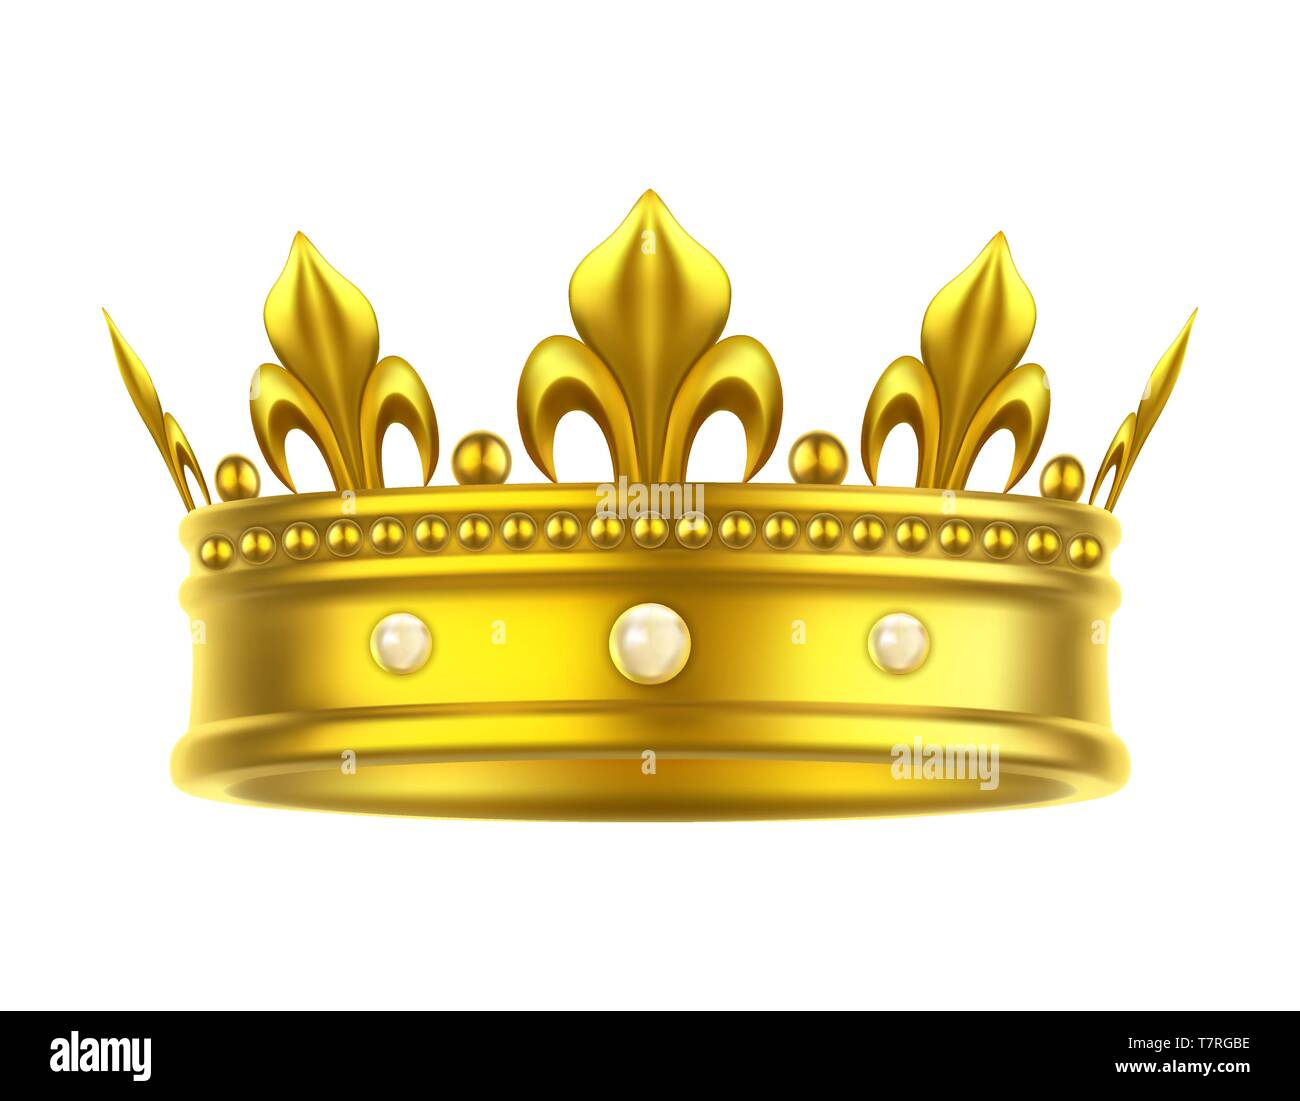 Golden isolated headdress or crown for king, queen - Stock Image